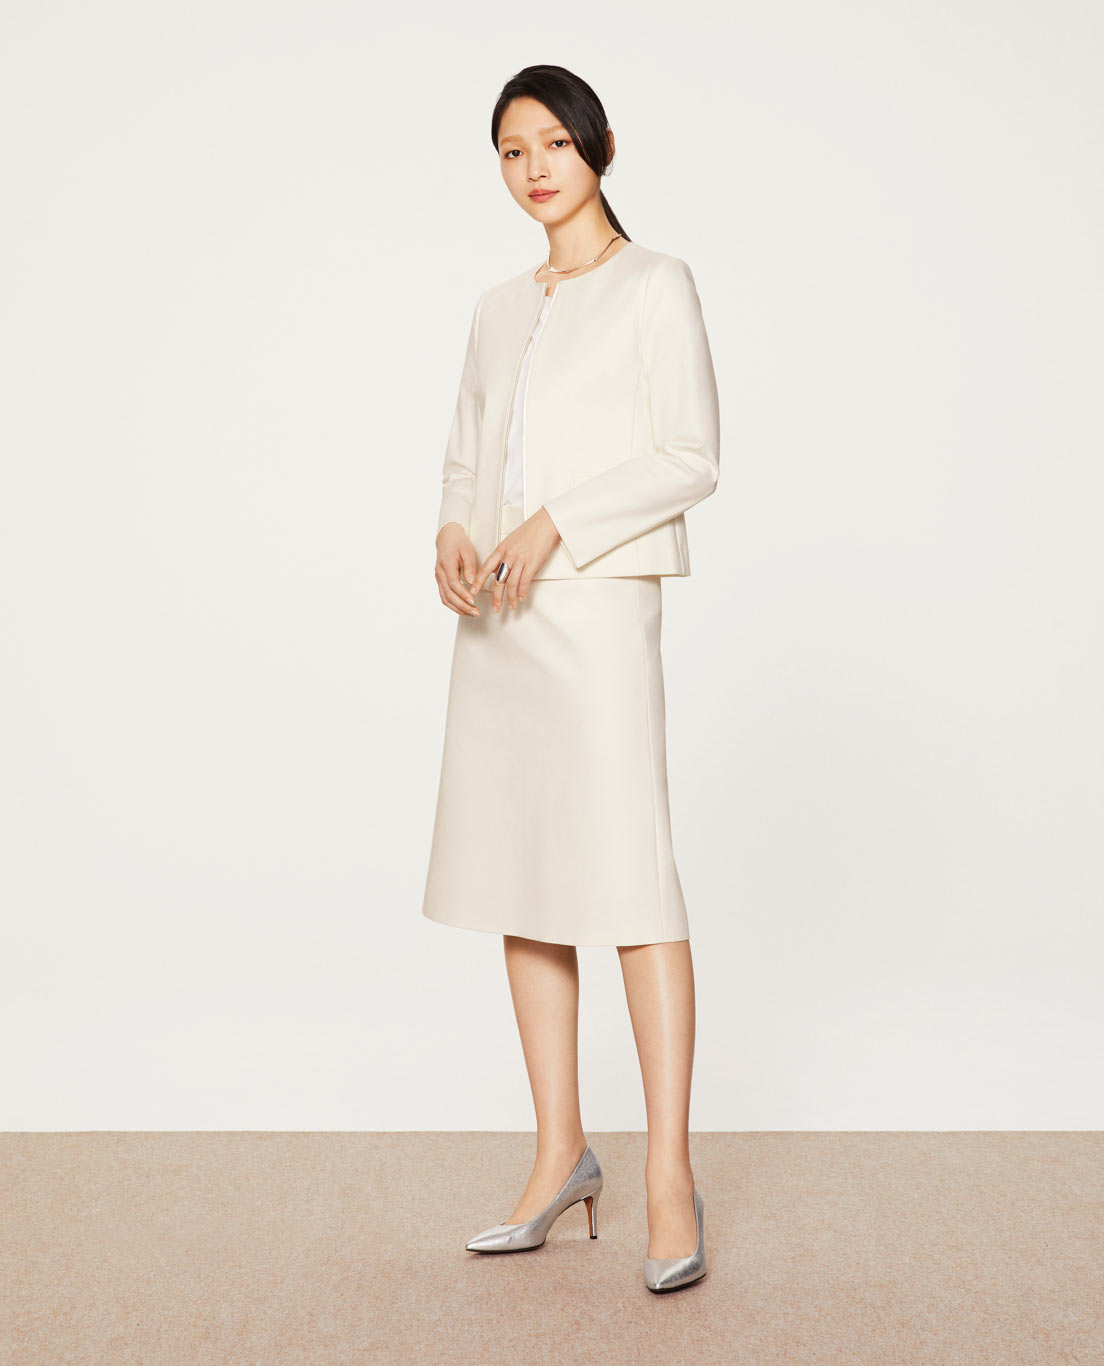 COMFORT ROUND NECK JACKET・ALINE SKIRT: 5526 / STRETCH / COTTON / DOUBLE CLOTH / WHITE